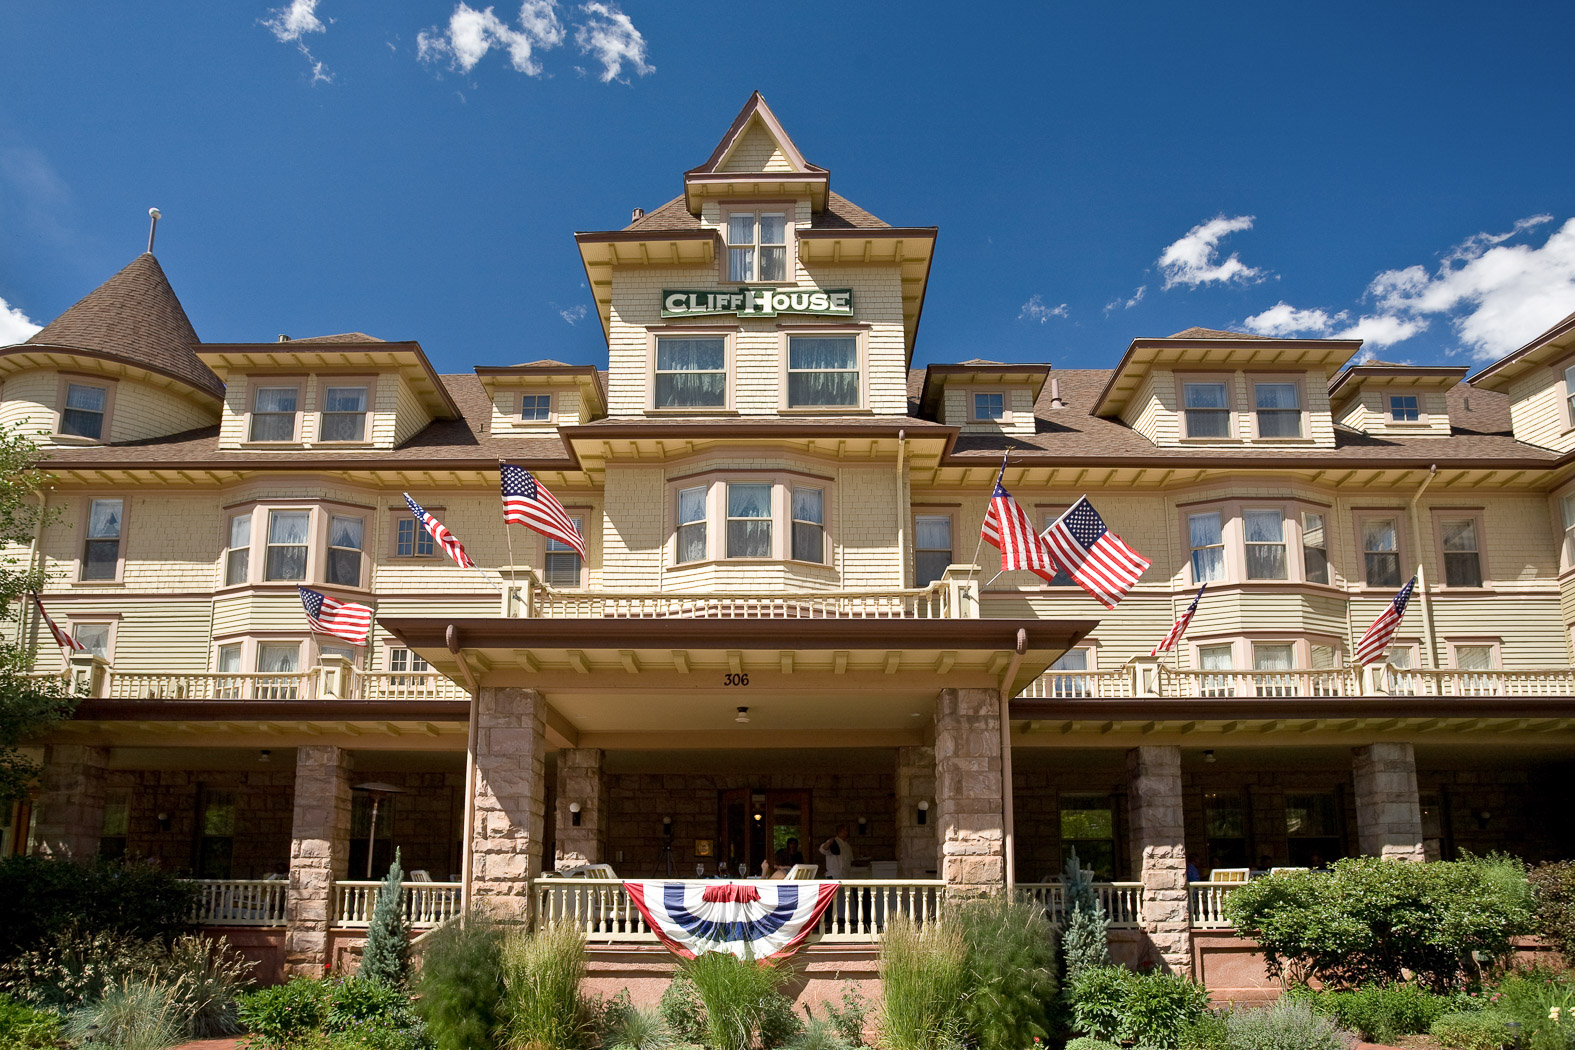 Manitou Springs Hotels | Our Official Website | The Cliff House